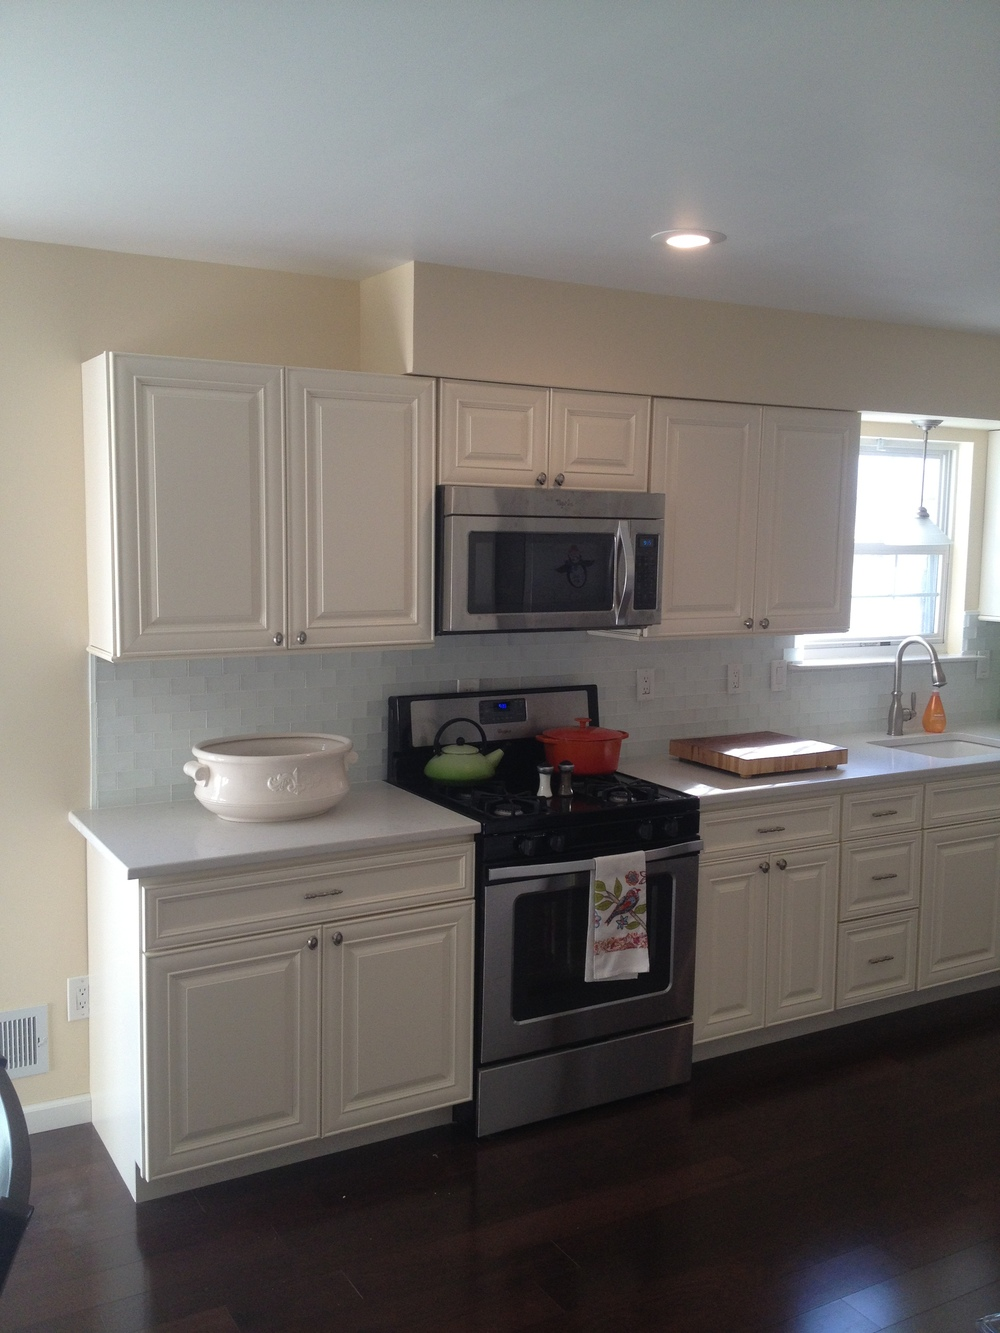 Kitchens — Best of NJ General Contractors | CnS ... - photo#33